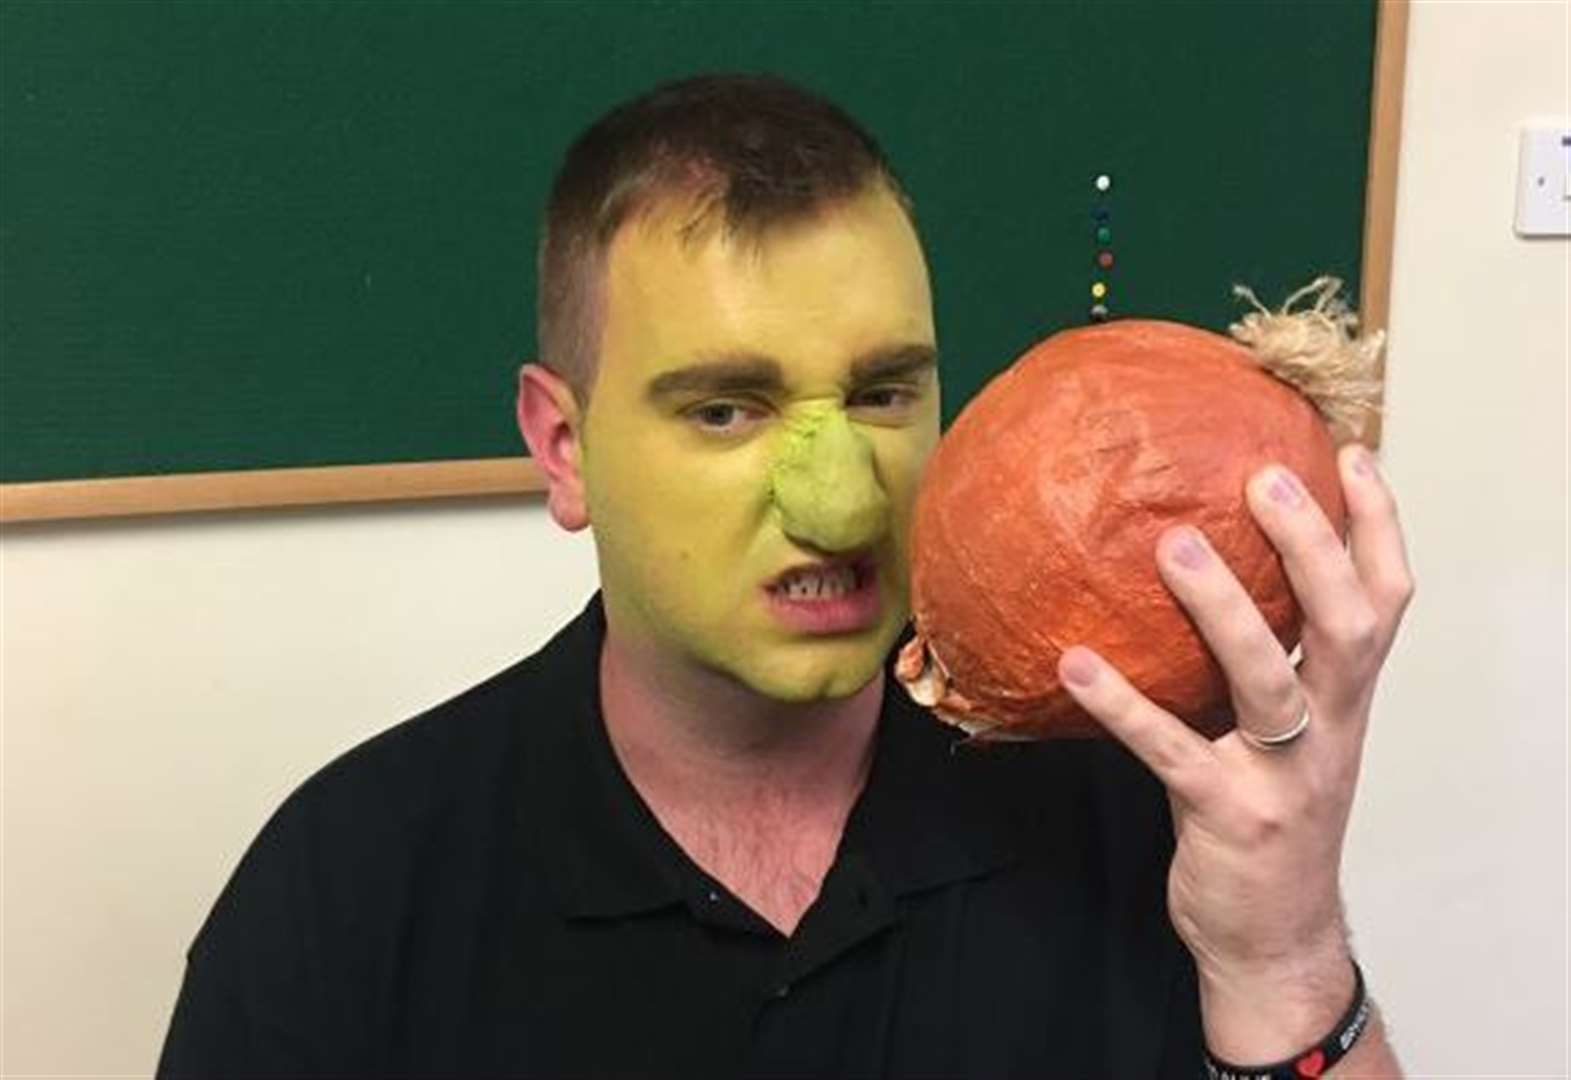 To make a great Shrek – just like an onion – an ogre needs his layers !